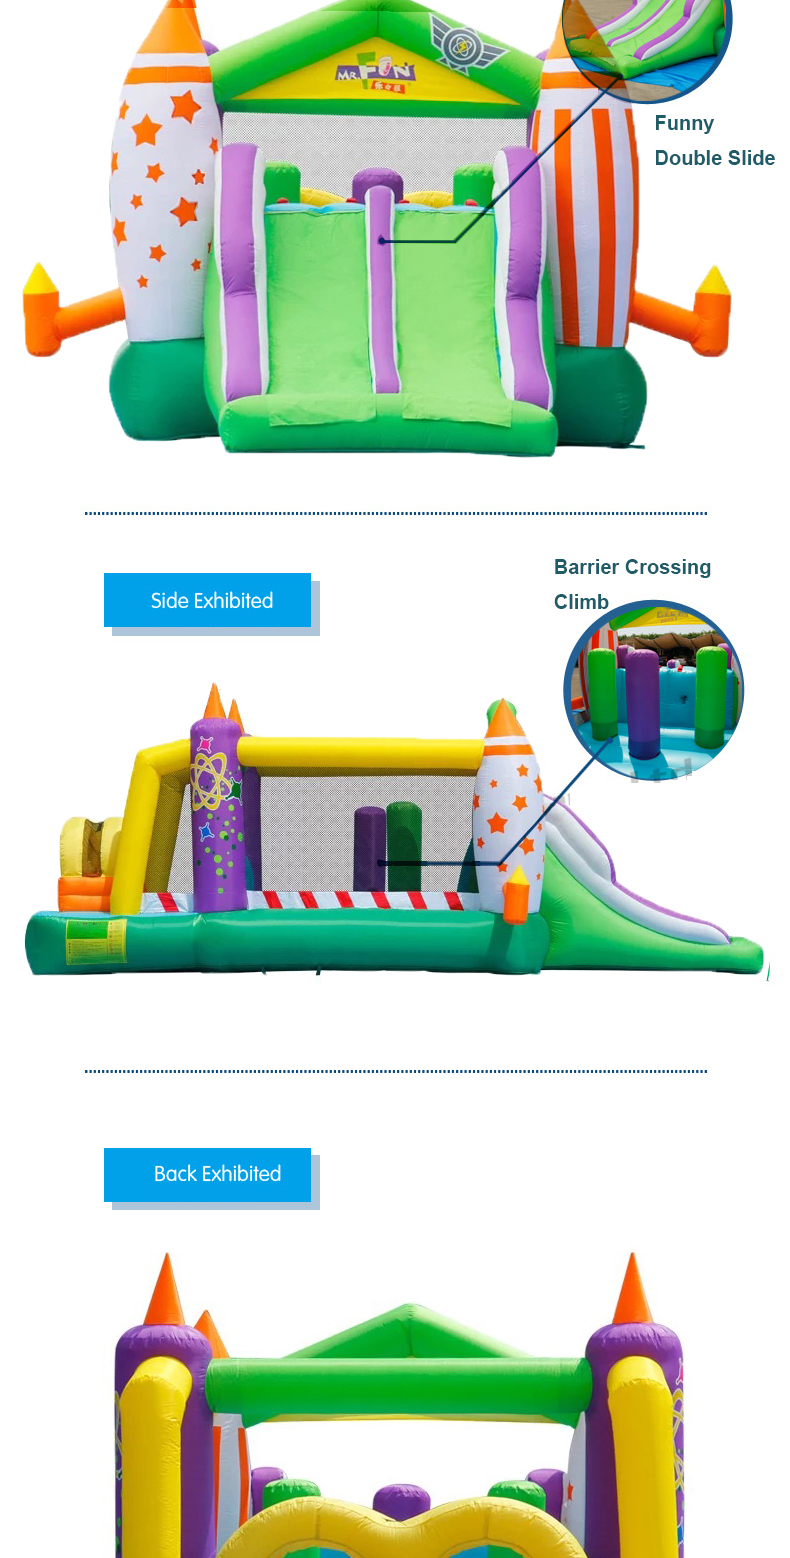 HTB1mBvyPFXXXXa1XVXXq6xXFXXXw - Mr. Fun Large Inflatable Rocket Trampoline Bounce House Castle For Kids with Double Slide Multi-function Playgound with Blower